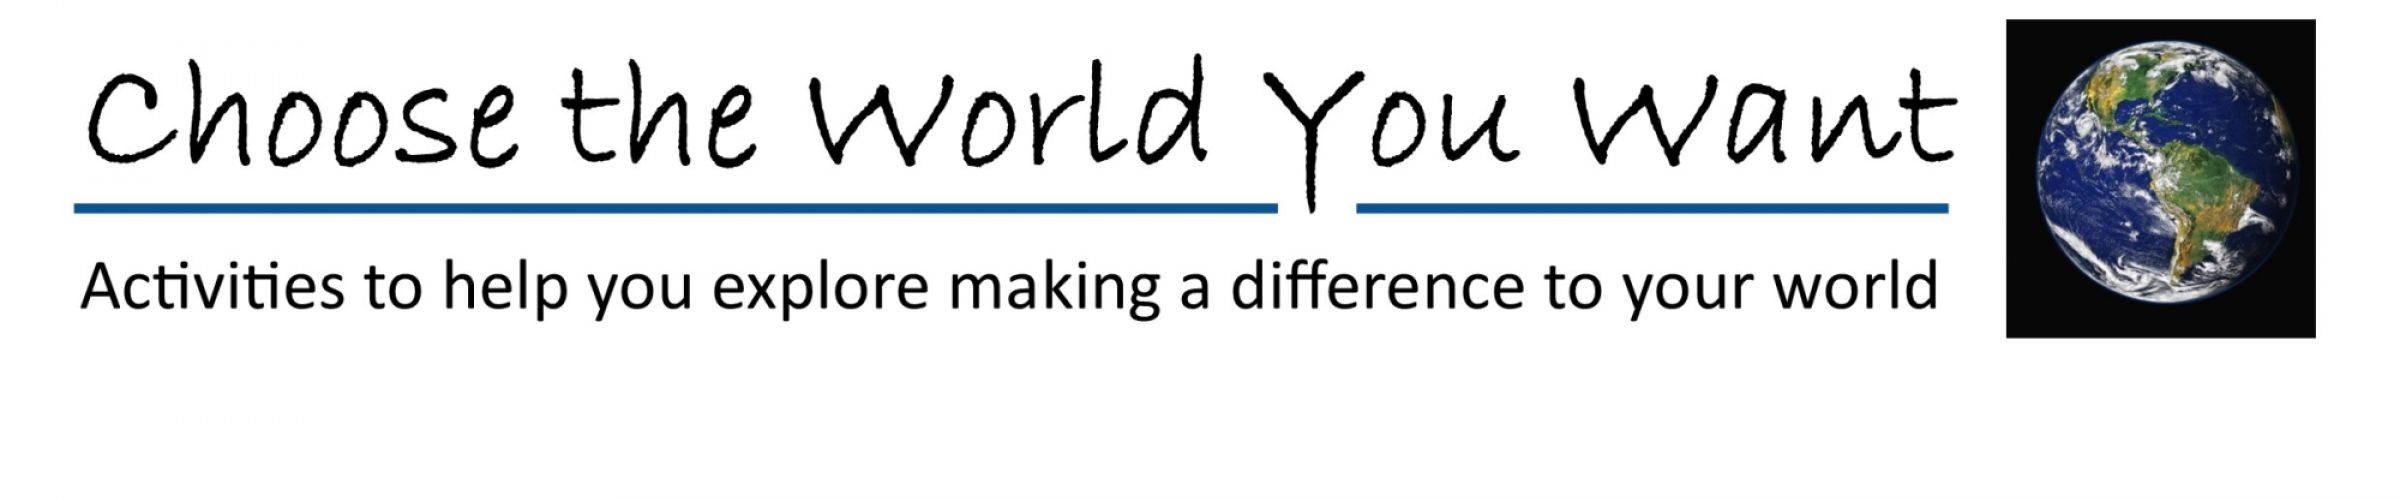 New home learning activities from CDEC to help young people Choose the World You Want